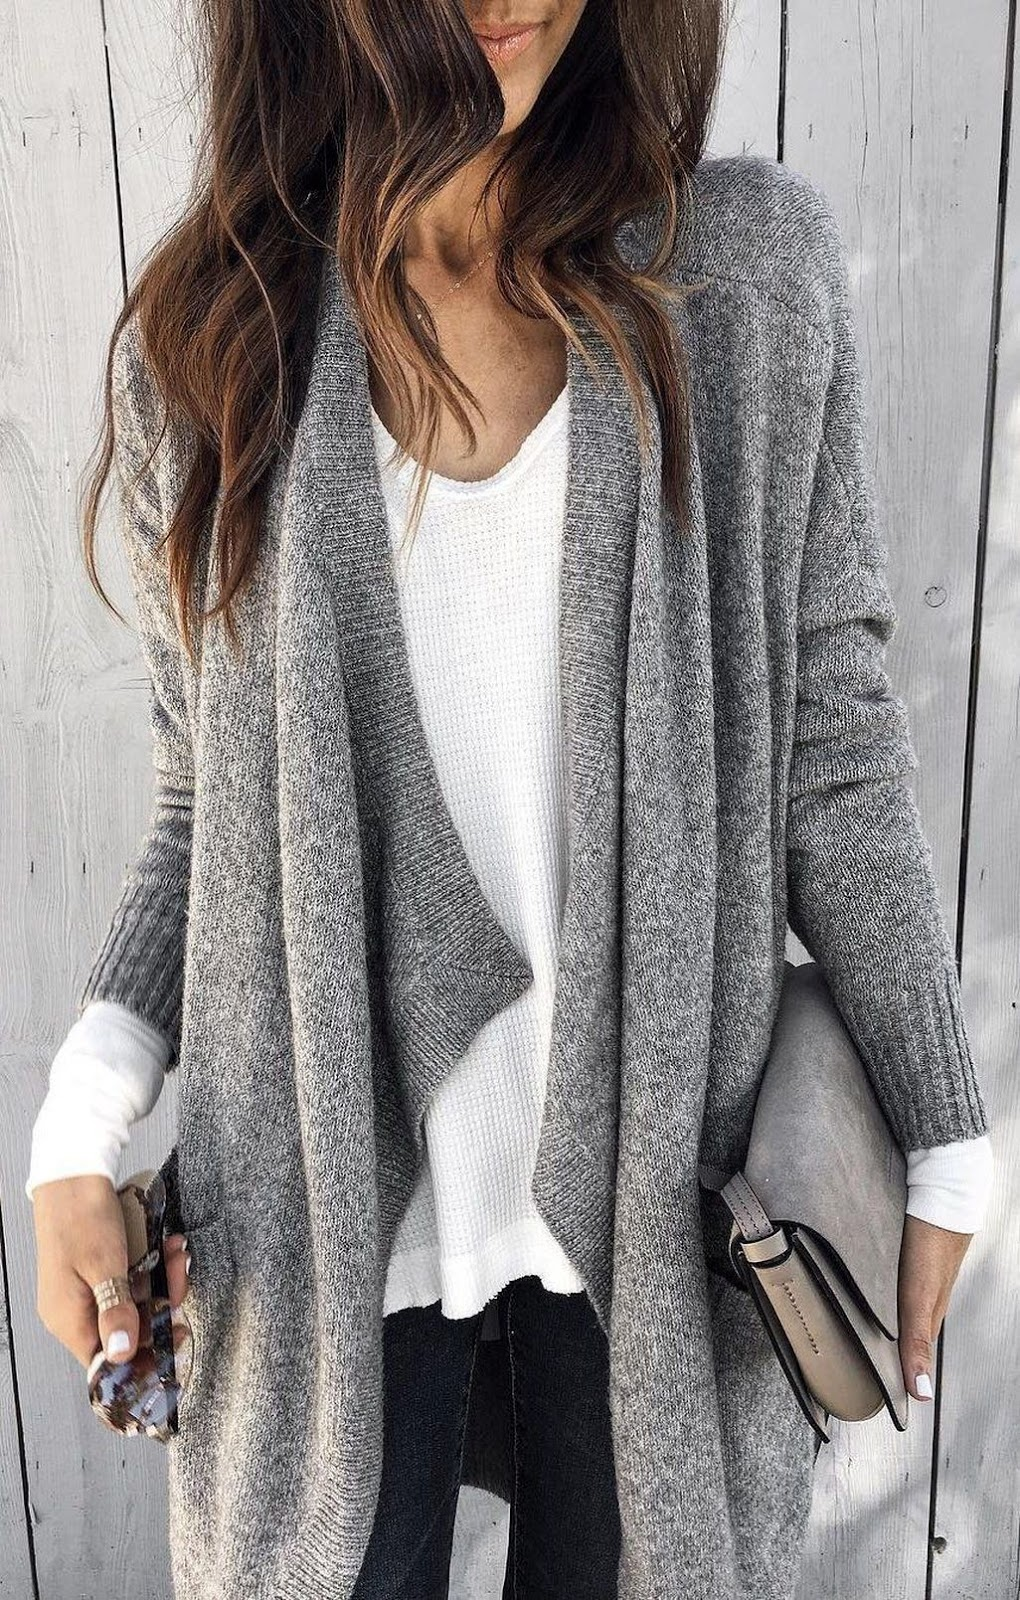 comfy look / knit cardigan + white sweater + skinny jeans